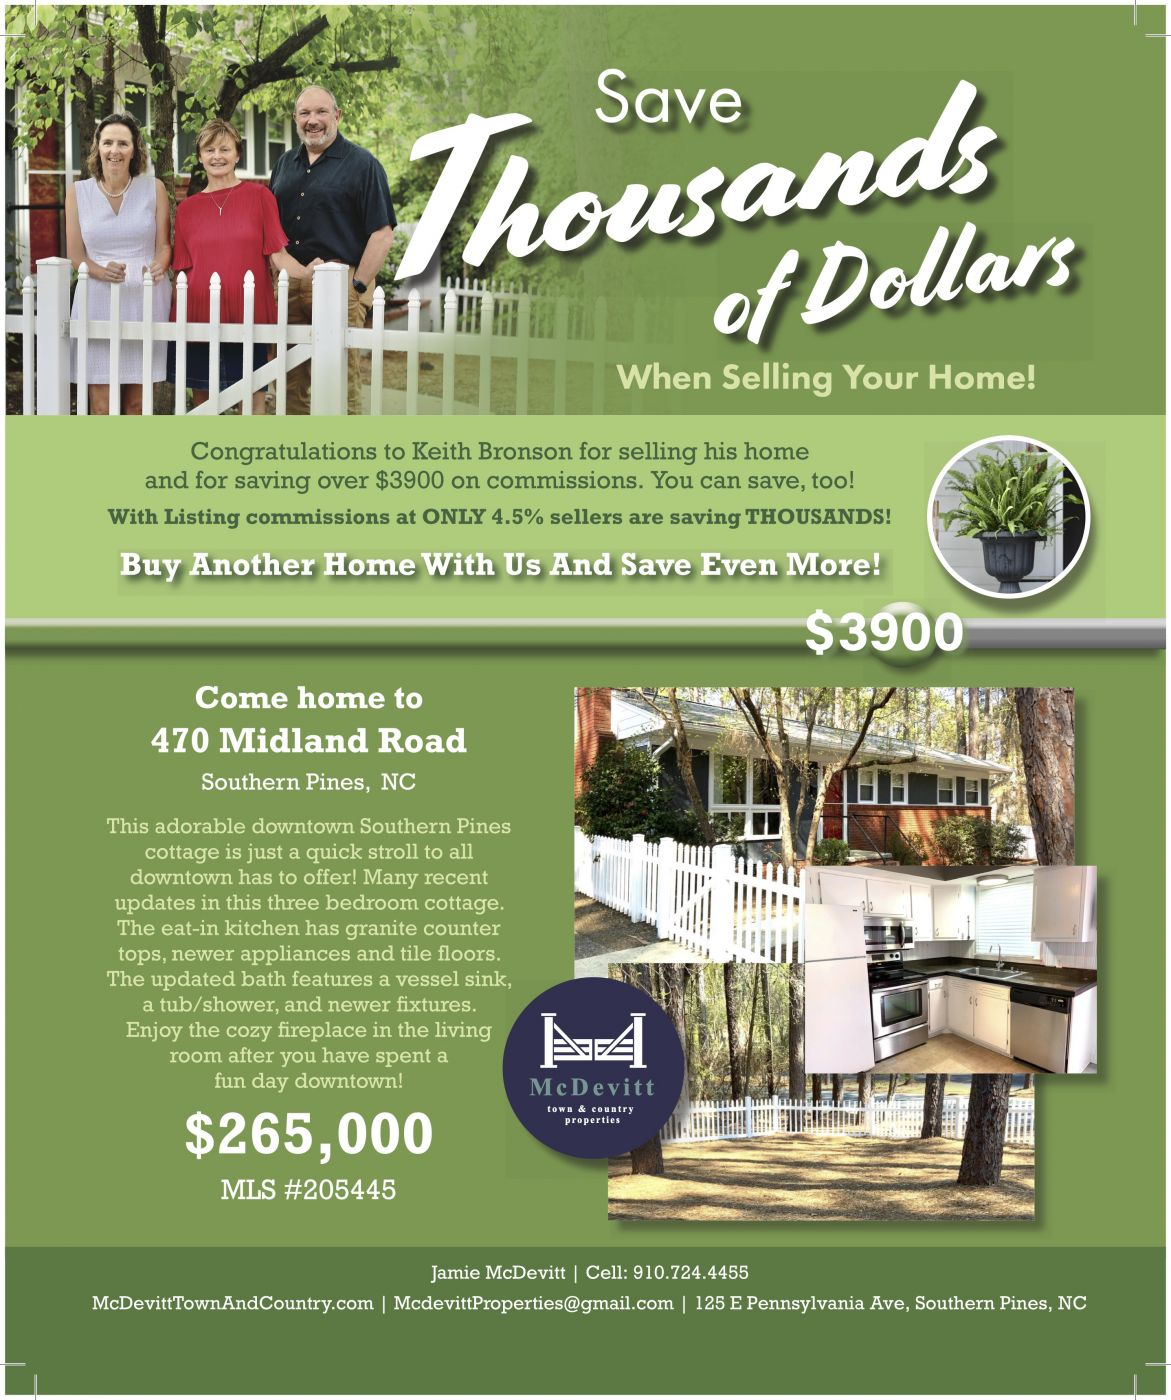 Selling your home Southern Pines NC